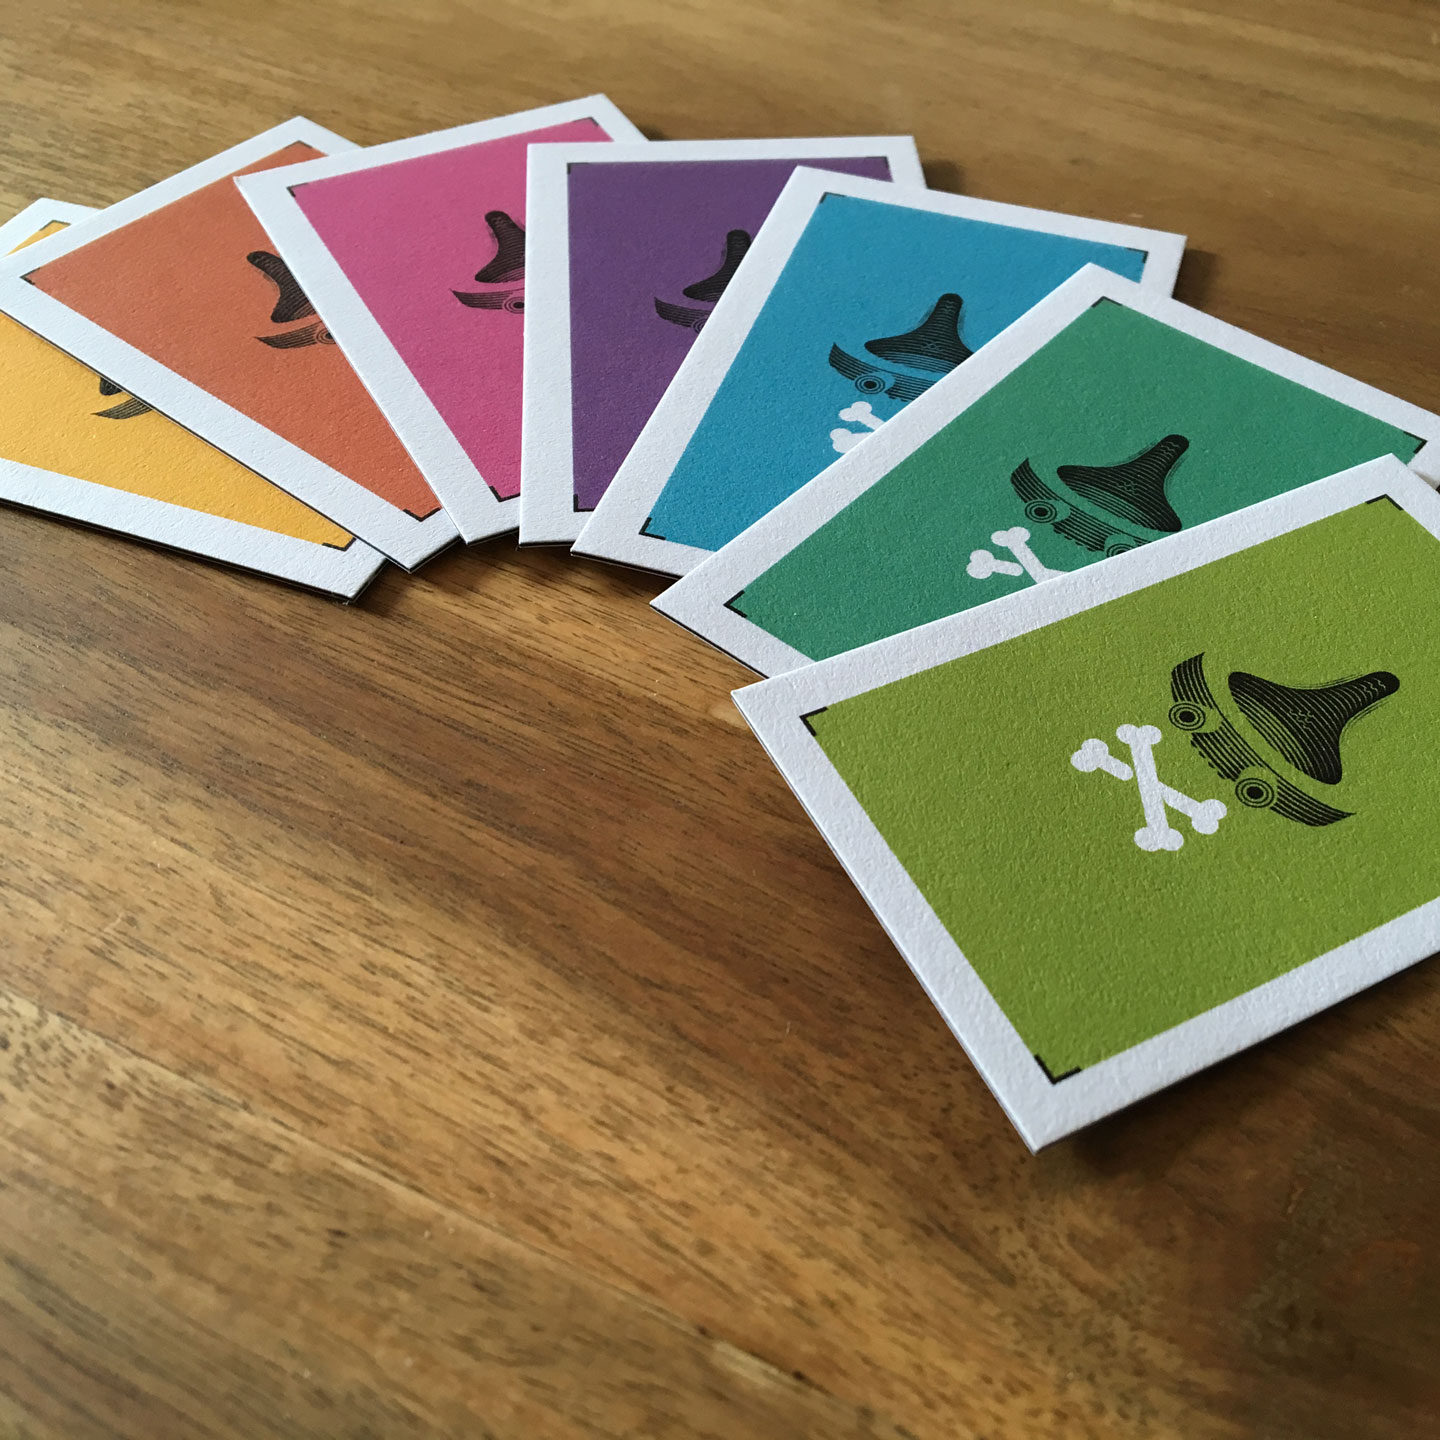 logo_zhion_cards_by_andre_levy_zhion.JPG